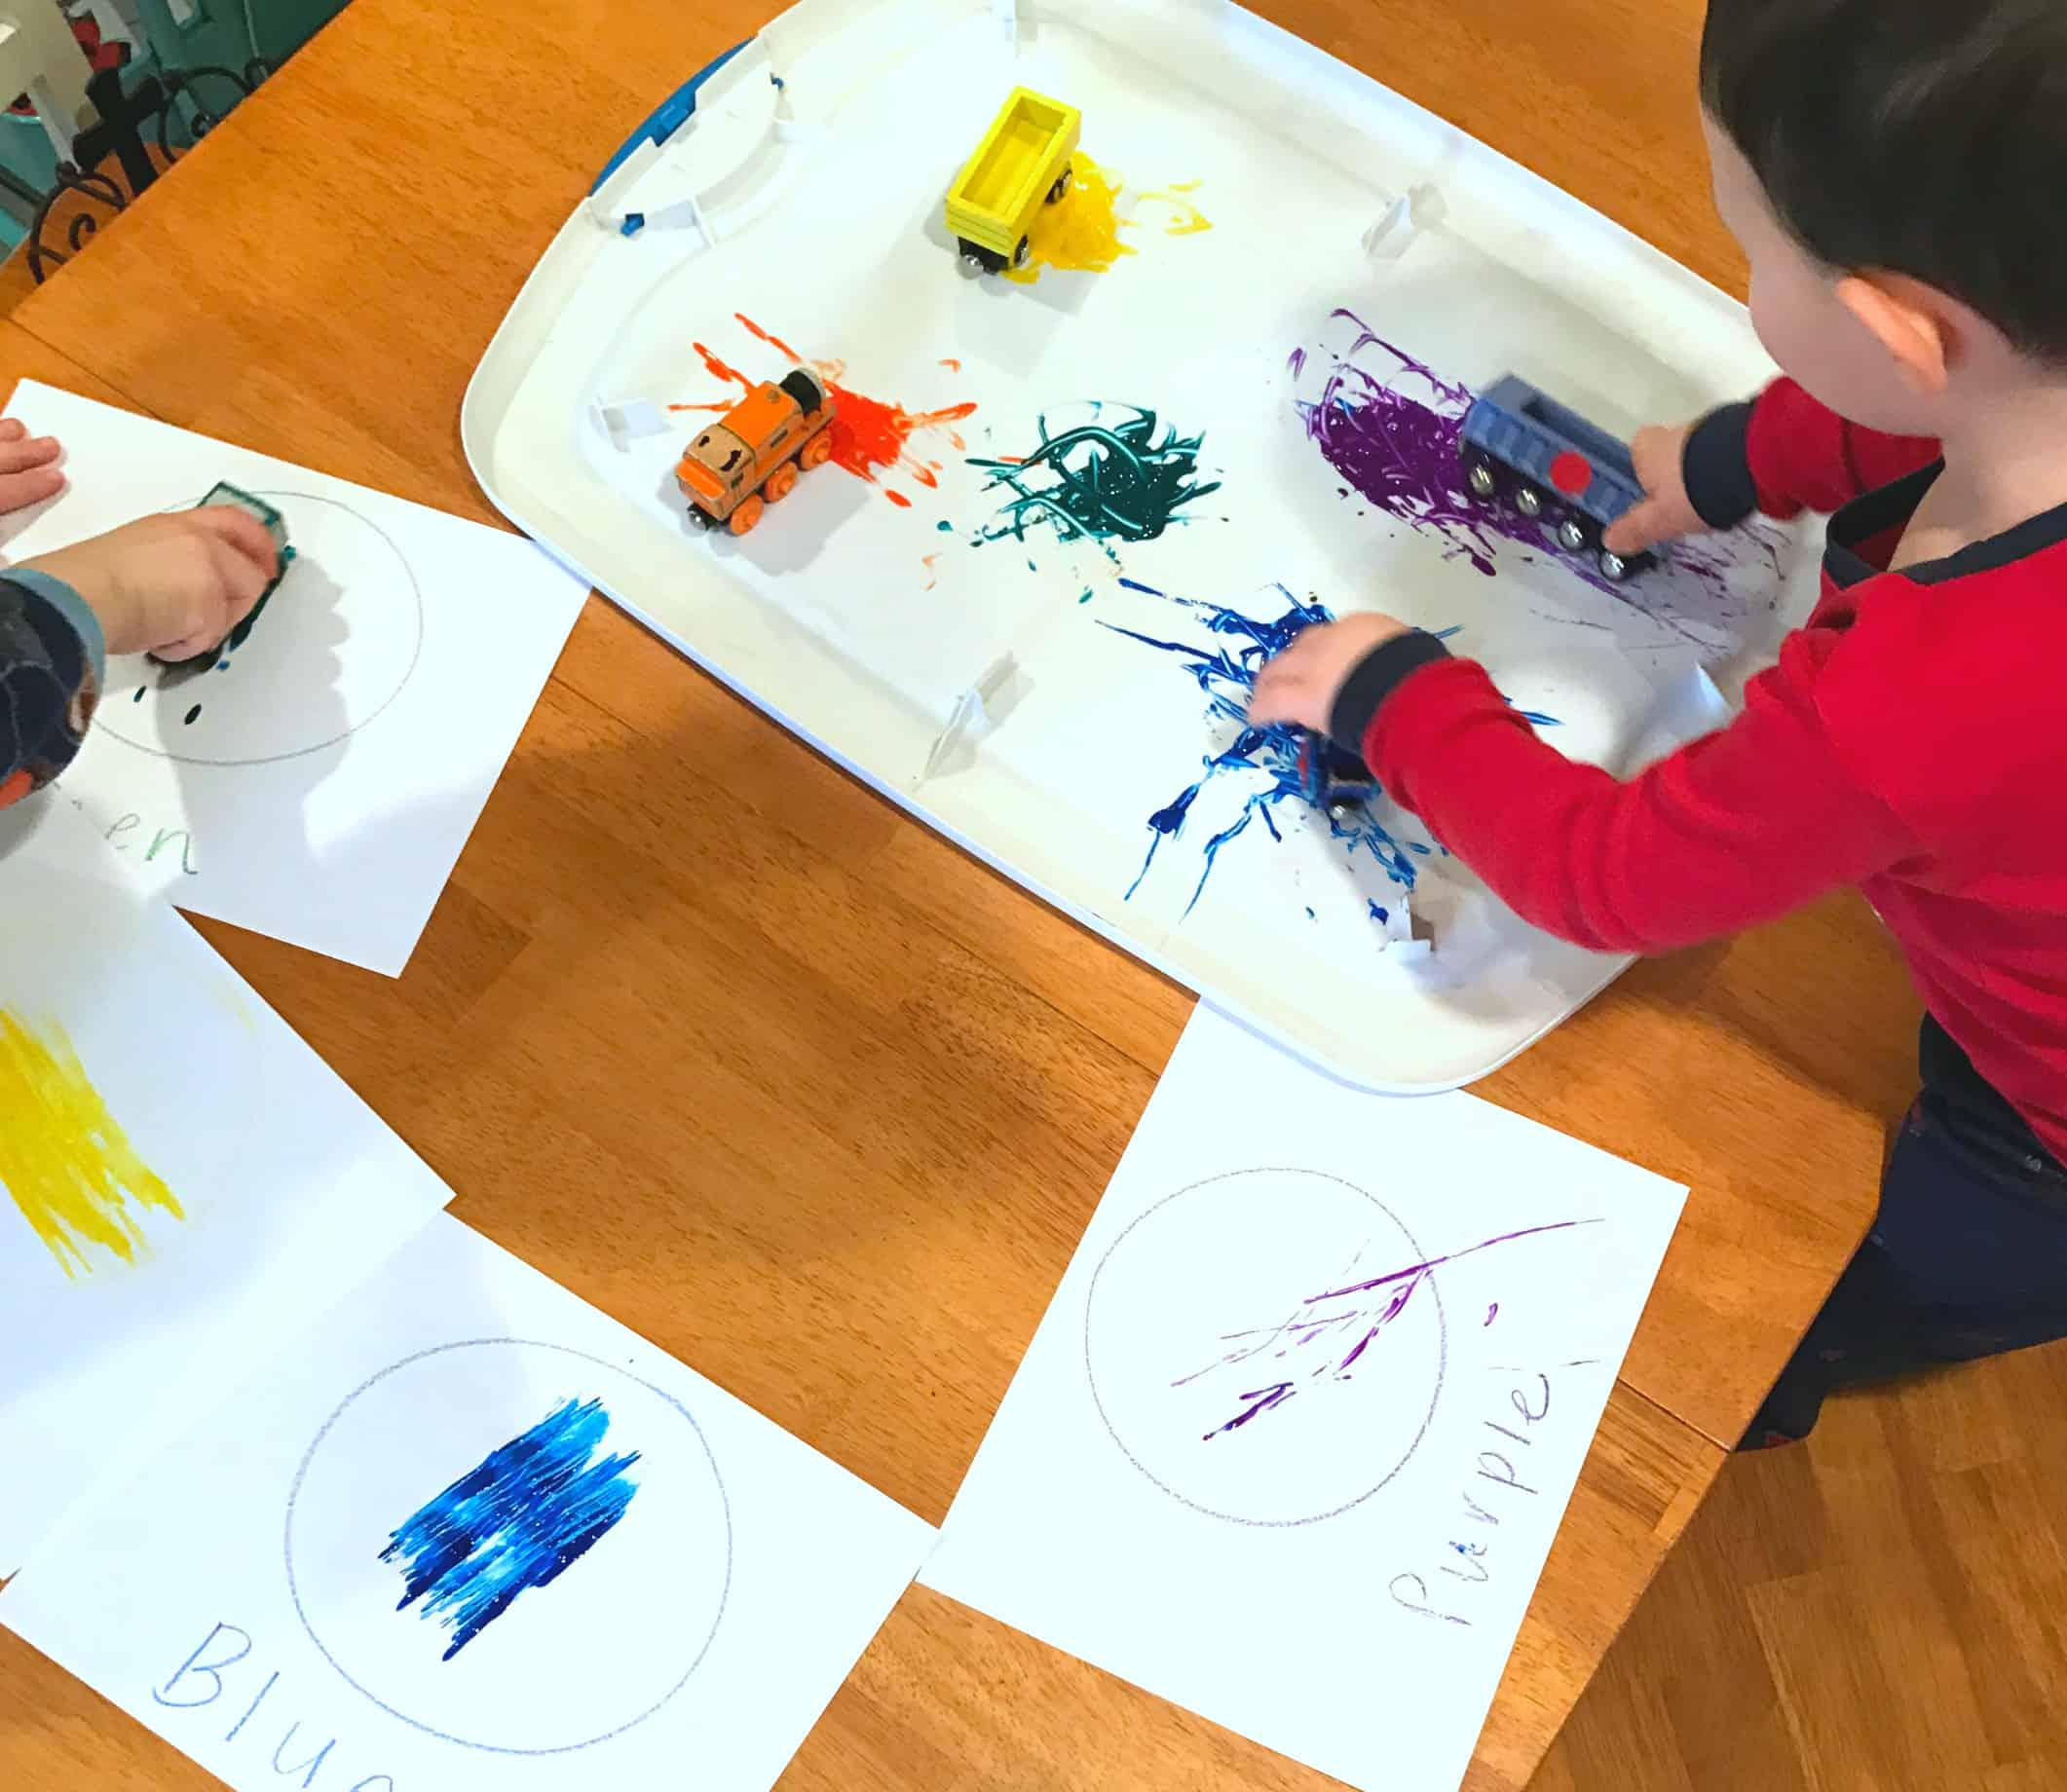 Painting with trains is a really great way to create a hands-on experience while learning colors! This fun method combines art with learning for toddlers.